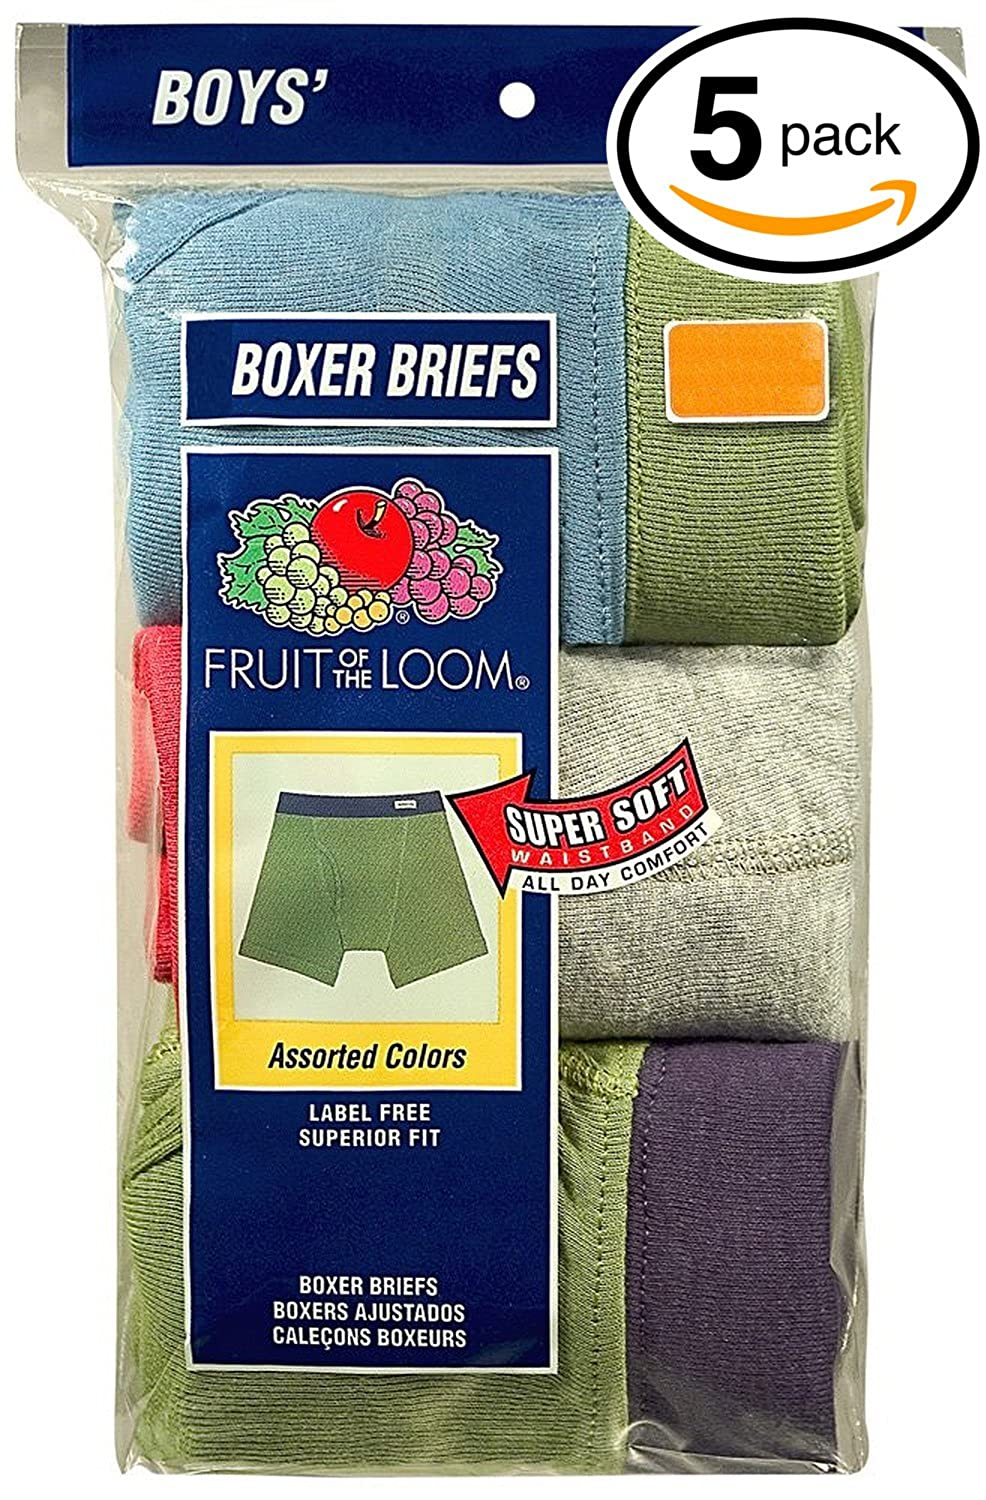 Exposed and Covered Waistband 3REL1CT Fruit of the Loom Boys Boxer Brief